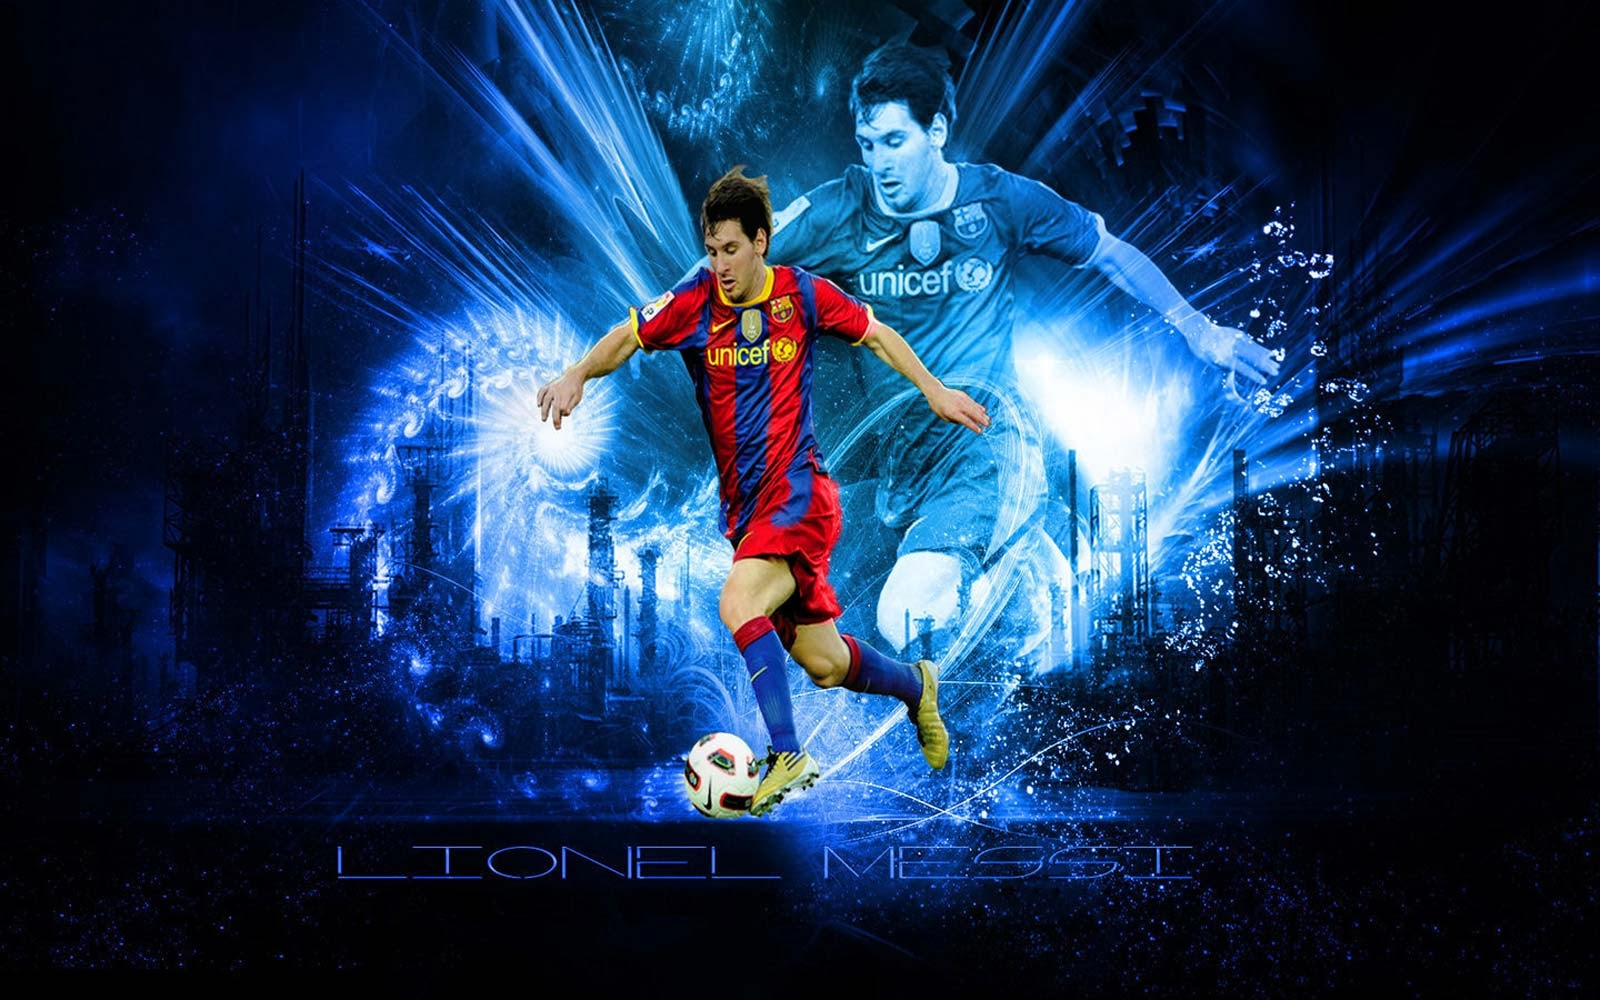 L Messi New HD Wallpapers 2013-2014